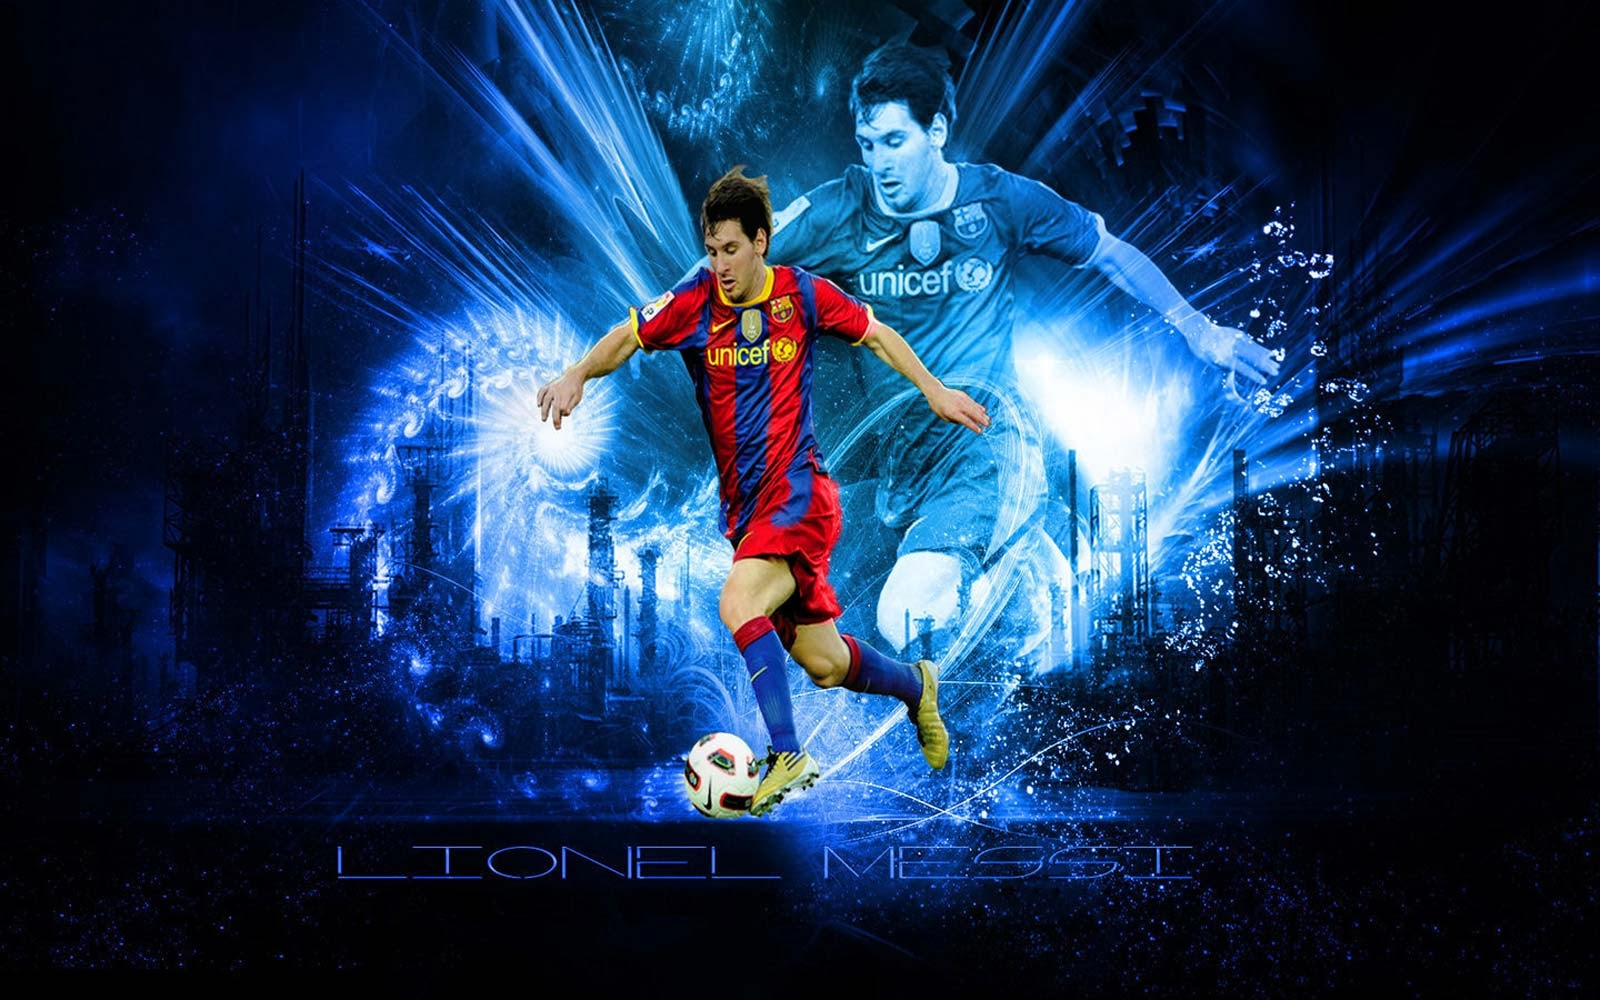 L Messi New HD Wallpapers 2013-2014